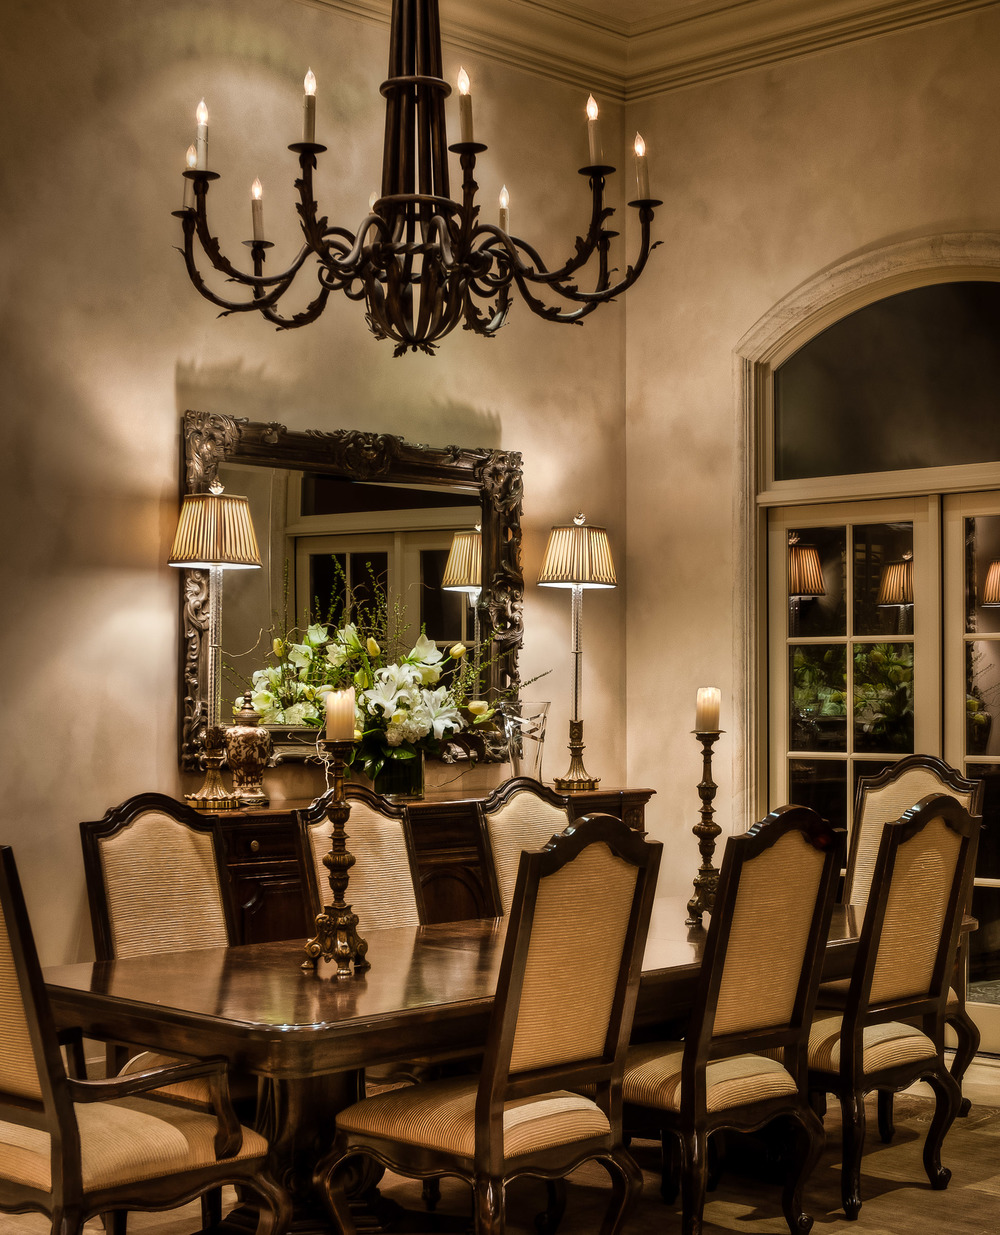 Dinning Room, Los Altos Hills, CA Photographed for Dawn Williams Design